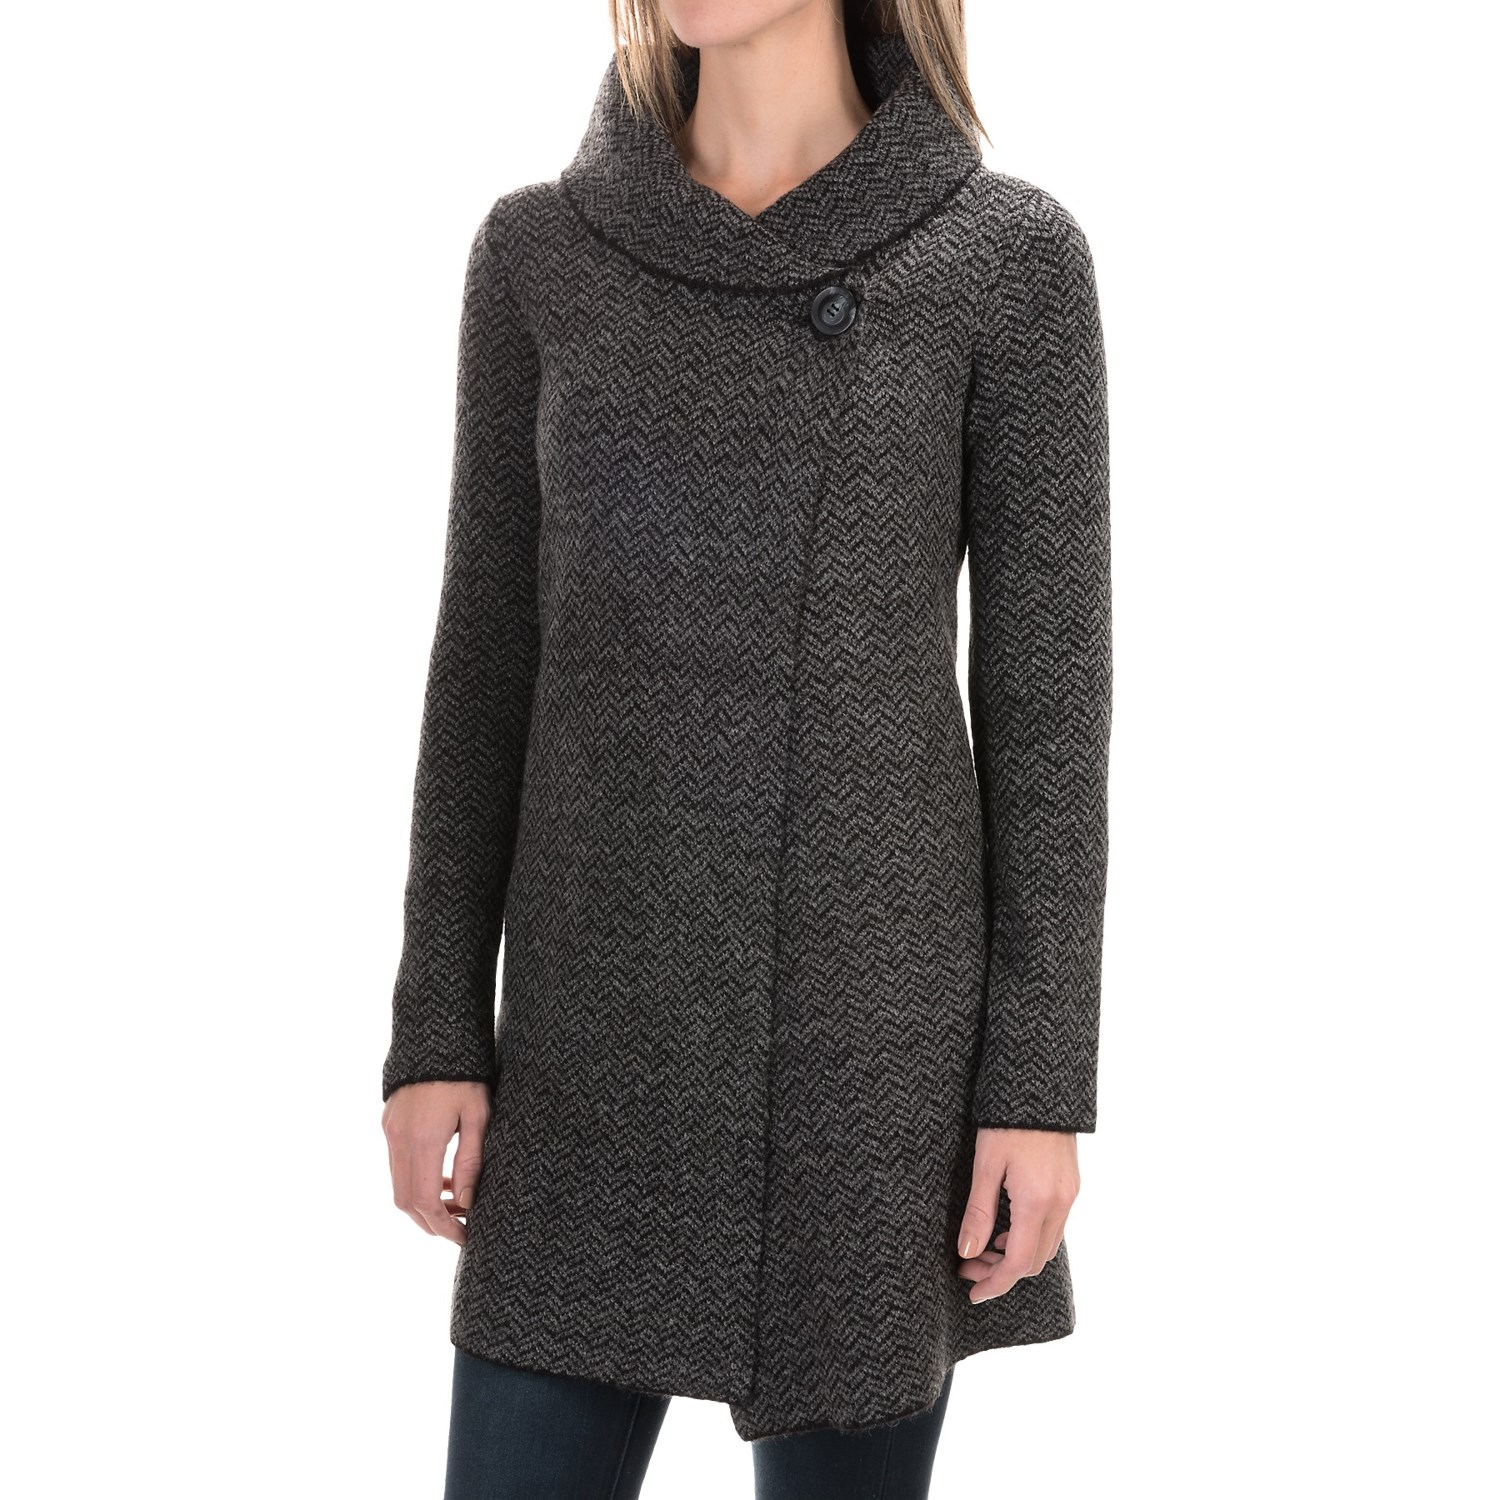 Shop the Women's Cashmere Cardigan Sweater With Shawl Collar at stilyaga.tk and see the entire selection of Women's Sweaters. Free Shipping Available.